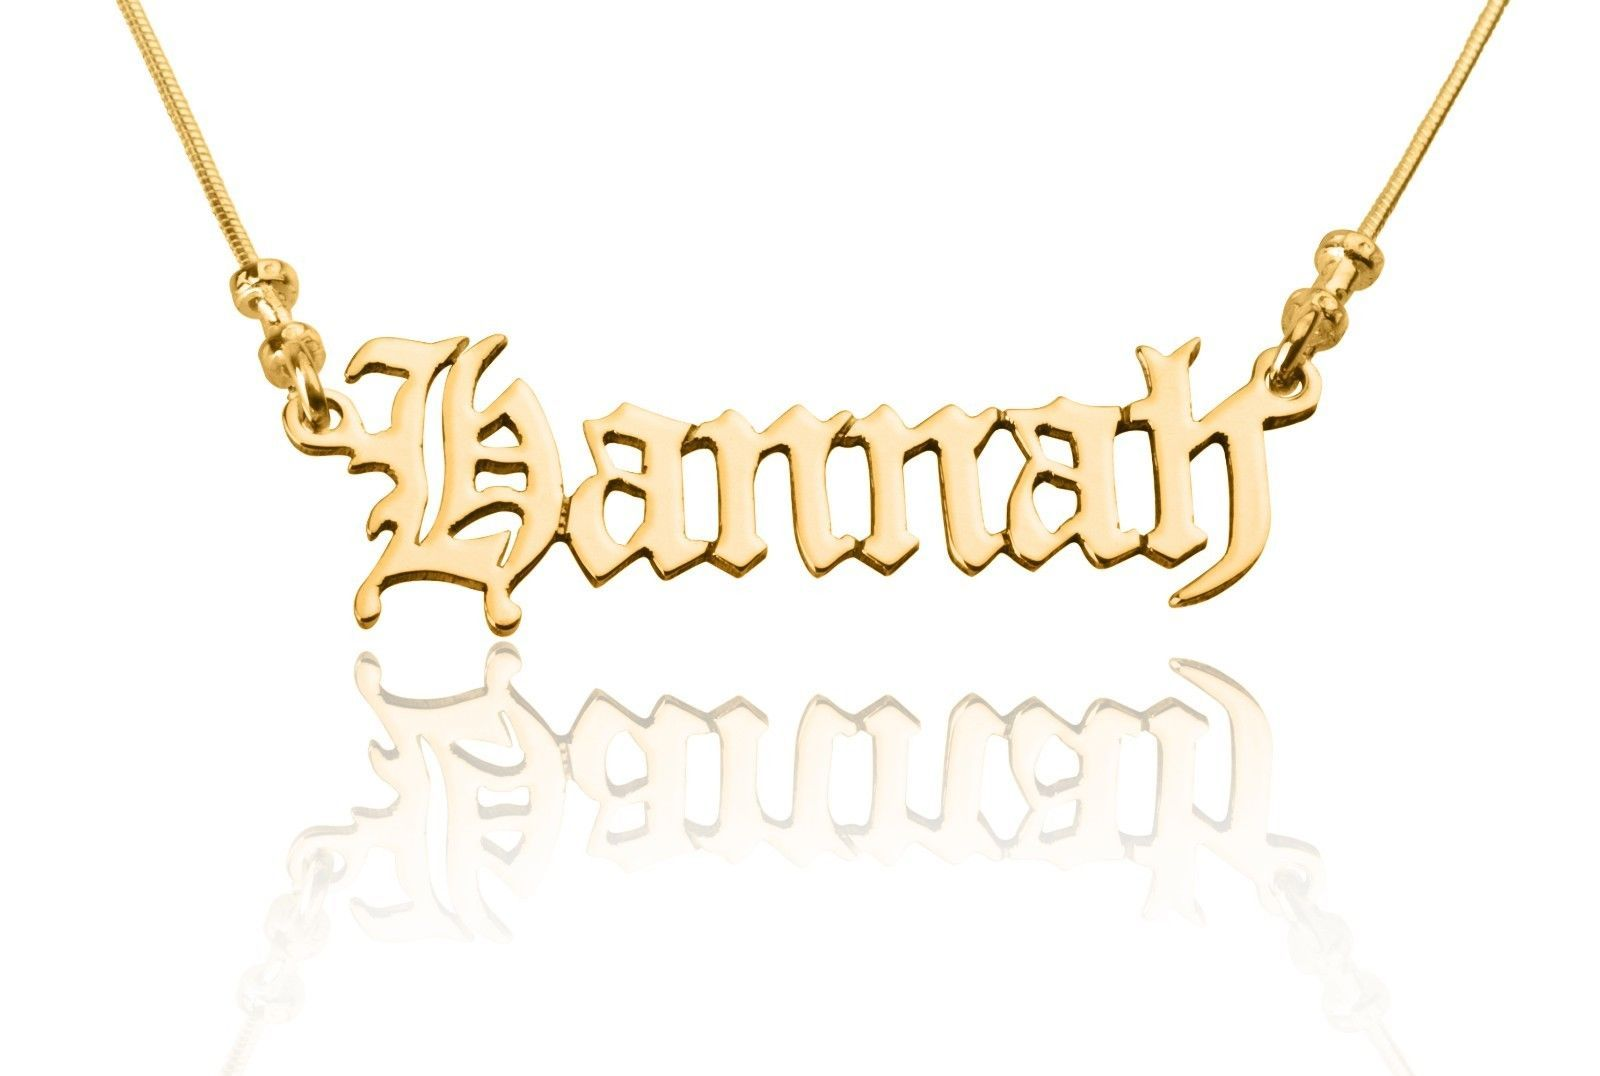 Old English Font Or Your Choice Personalized Name Necklace 24k Gold Plated